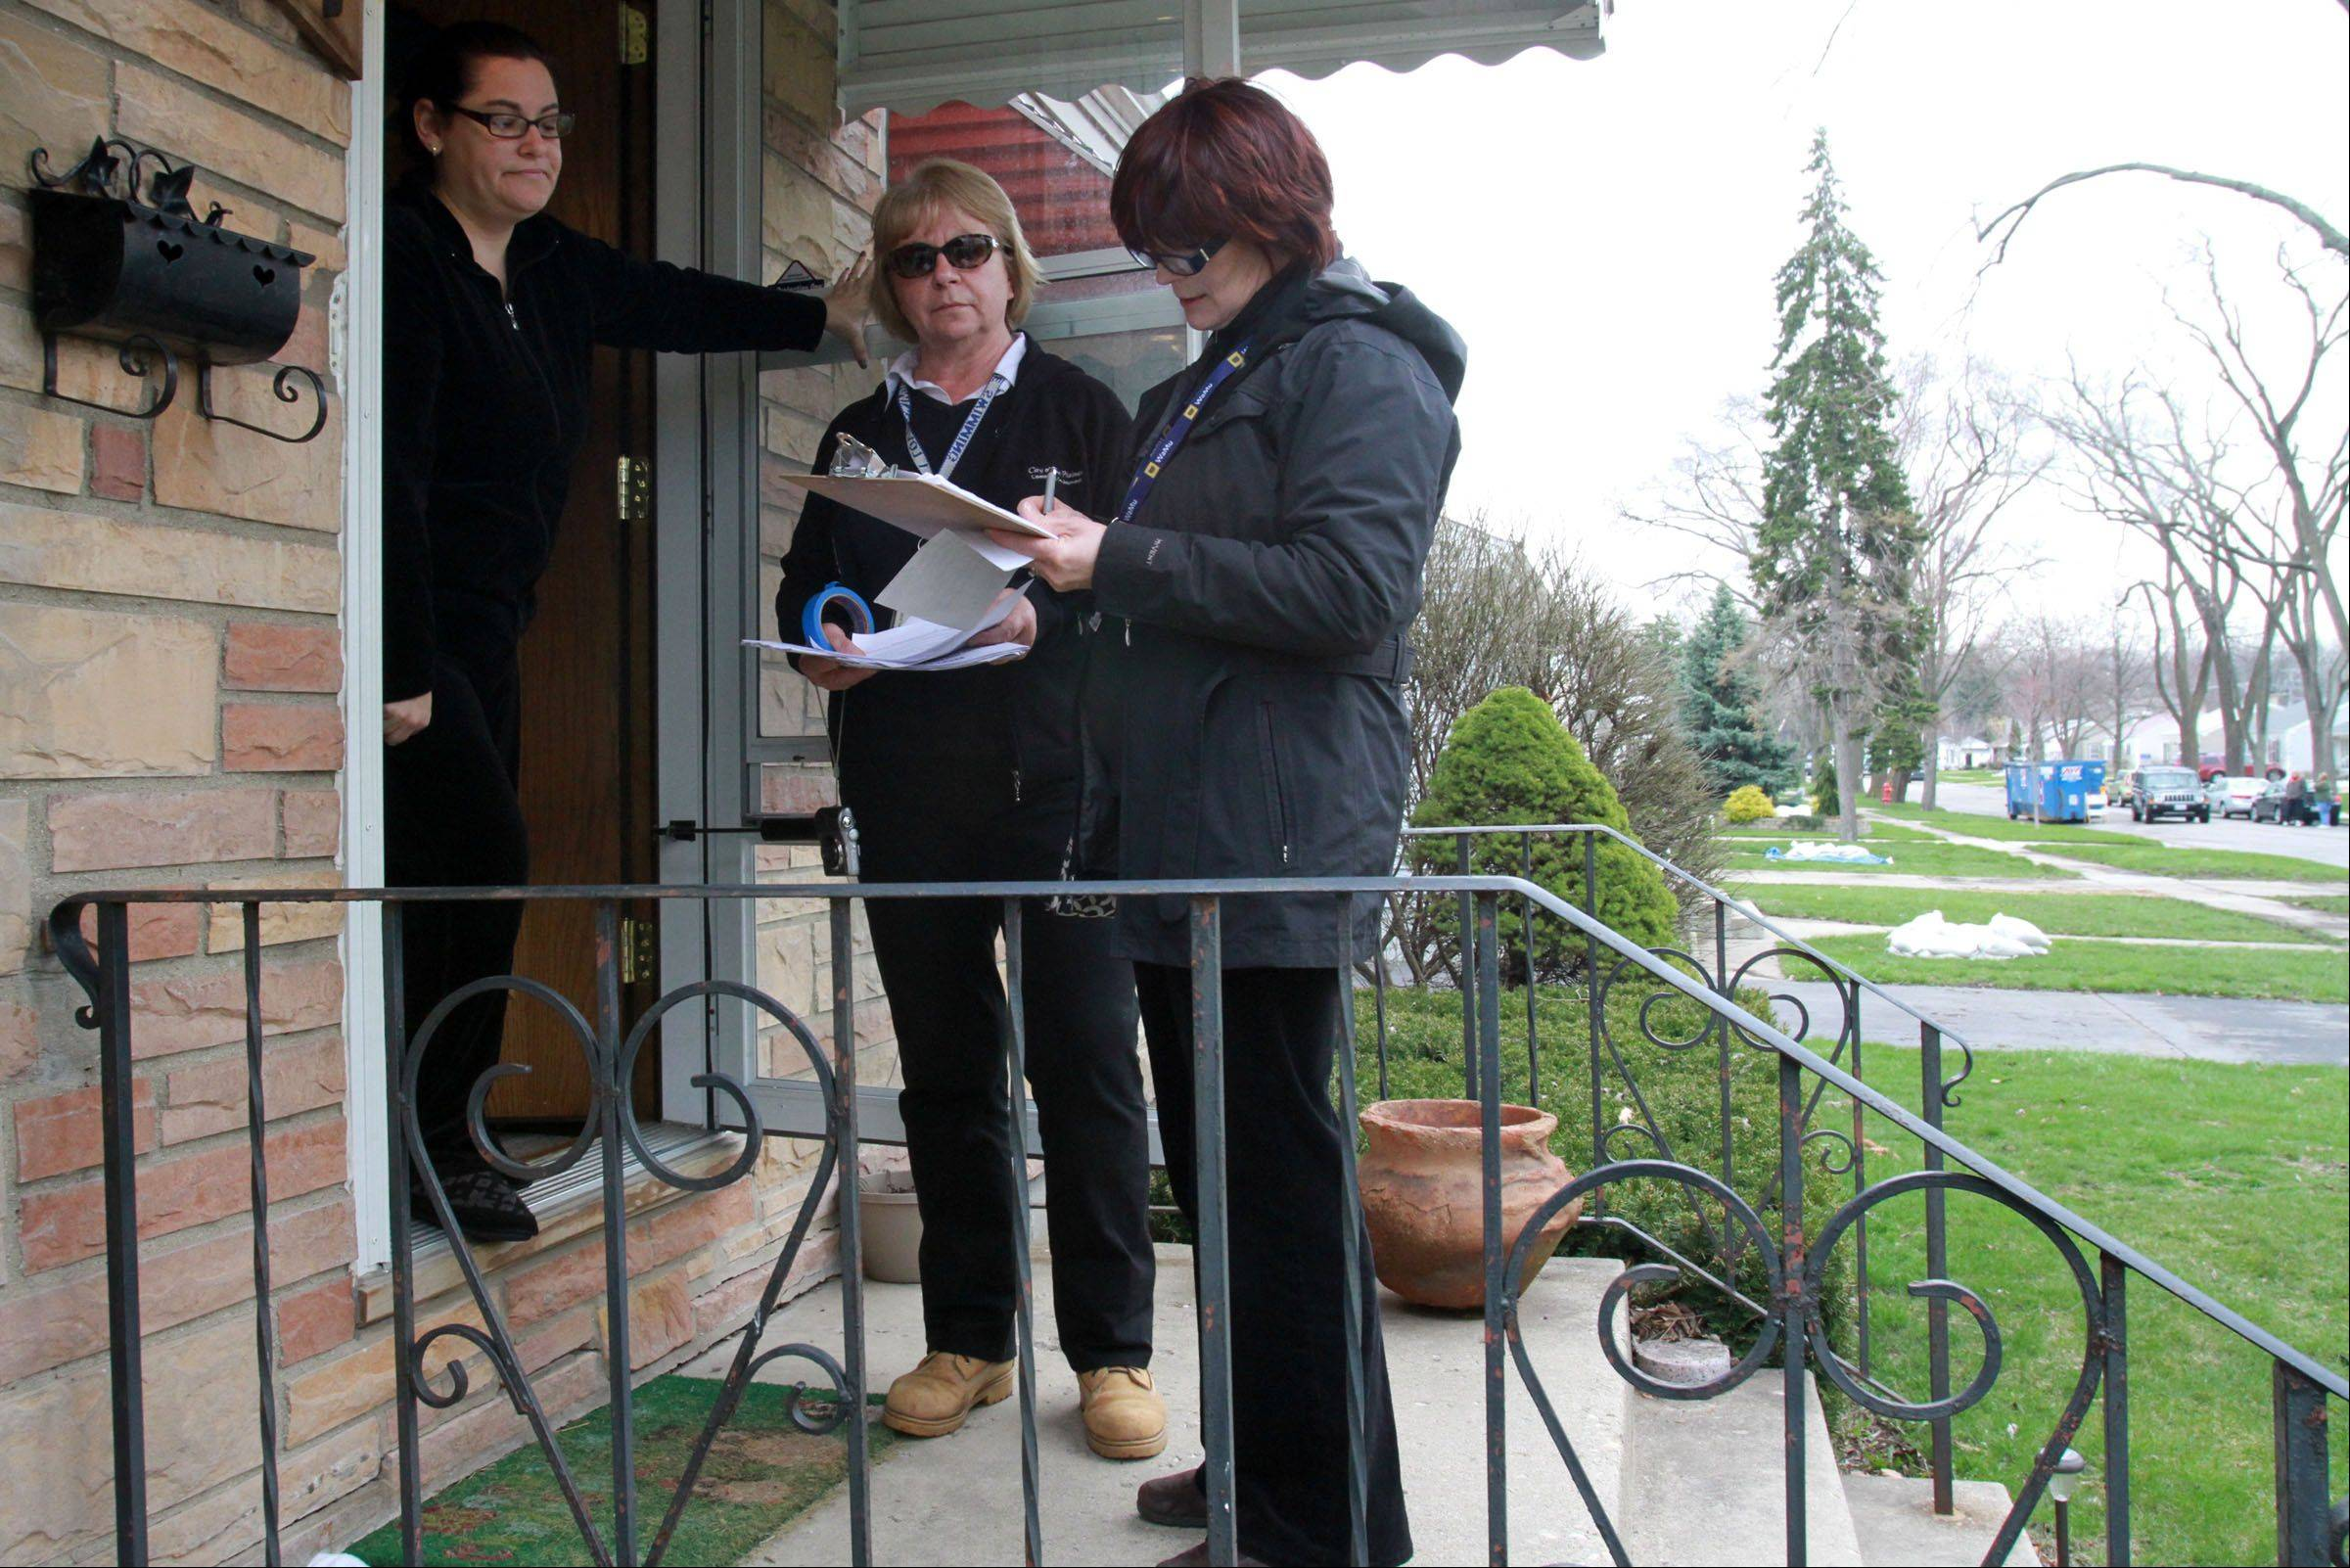 Des Plaines building inspectors Davorka Kirincic, right, and Pam Lunsmann ask Nicole Posen on Fargo Street about flooding in her home and yard in Des Plaines on Tuesday.